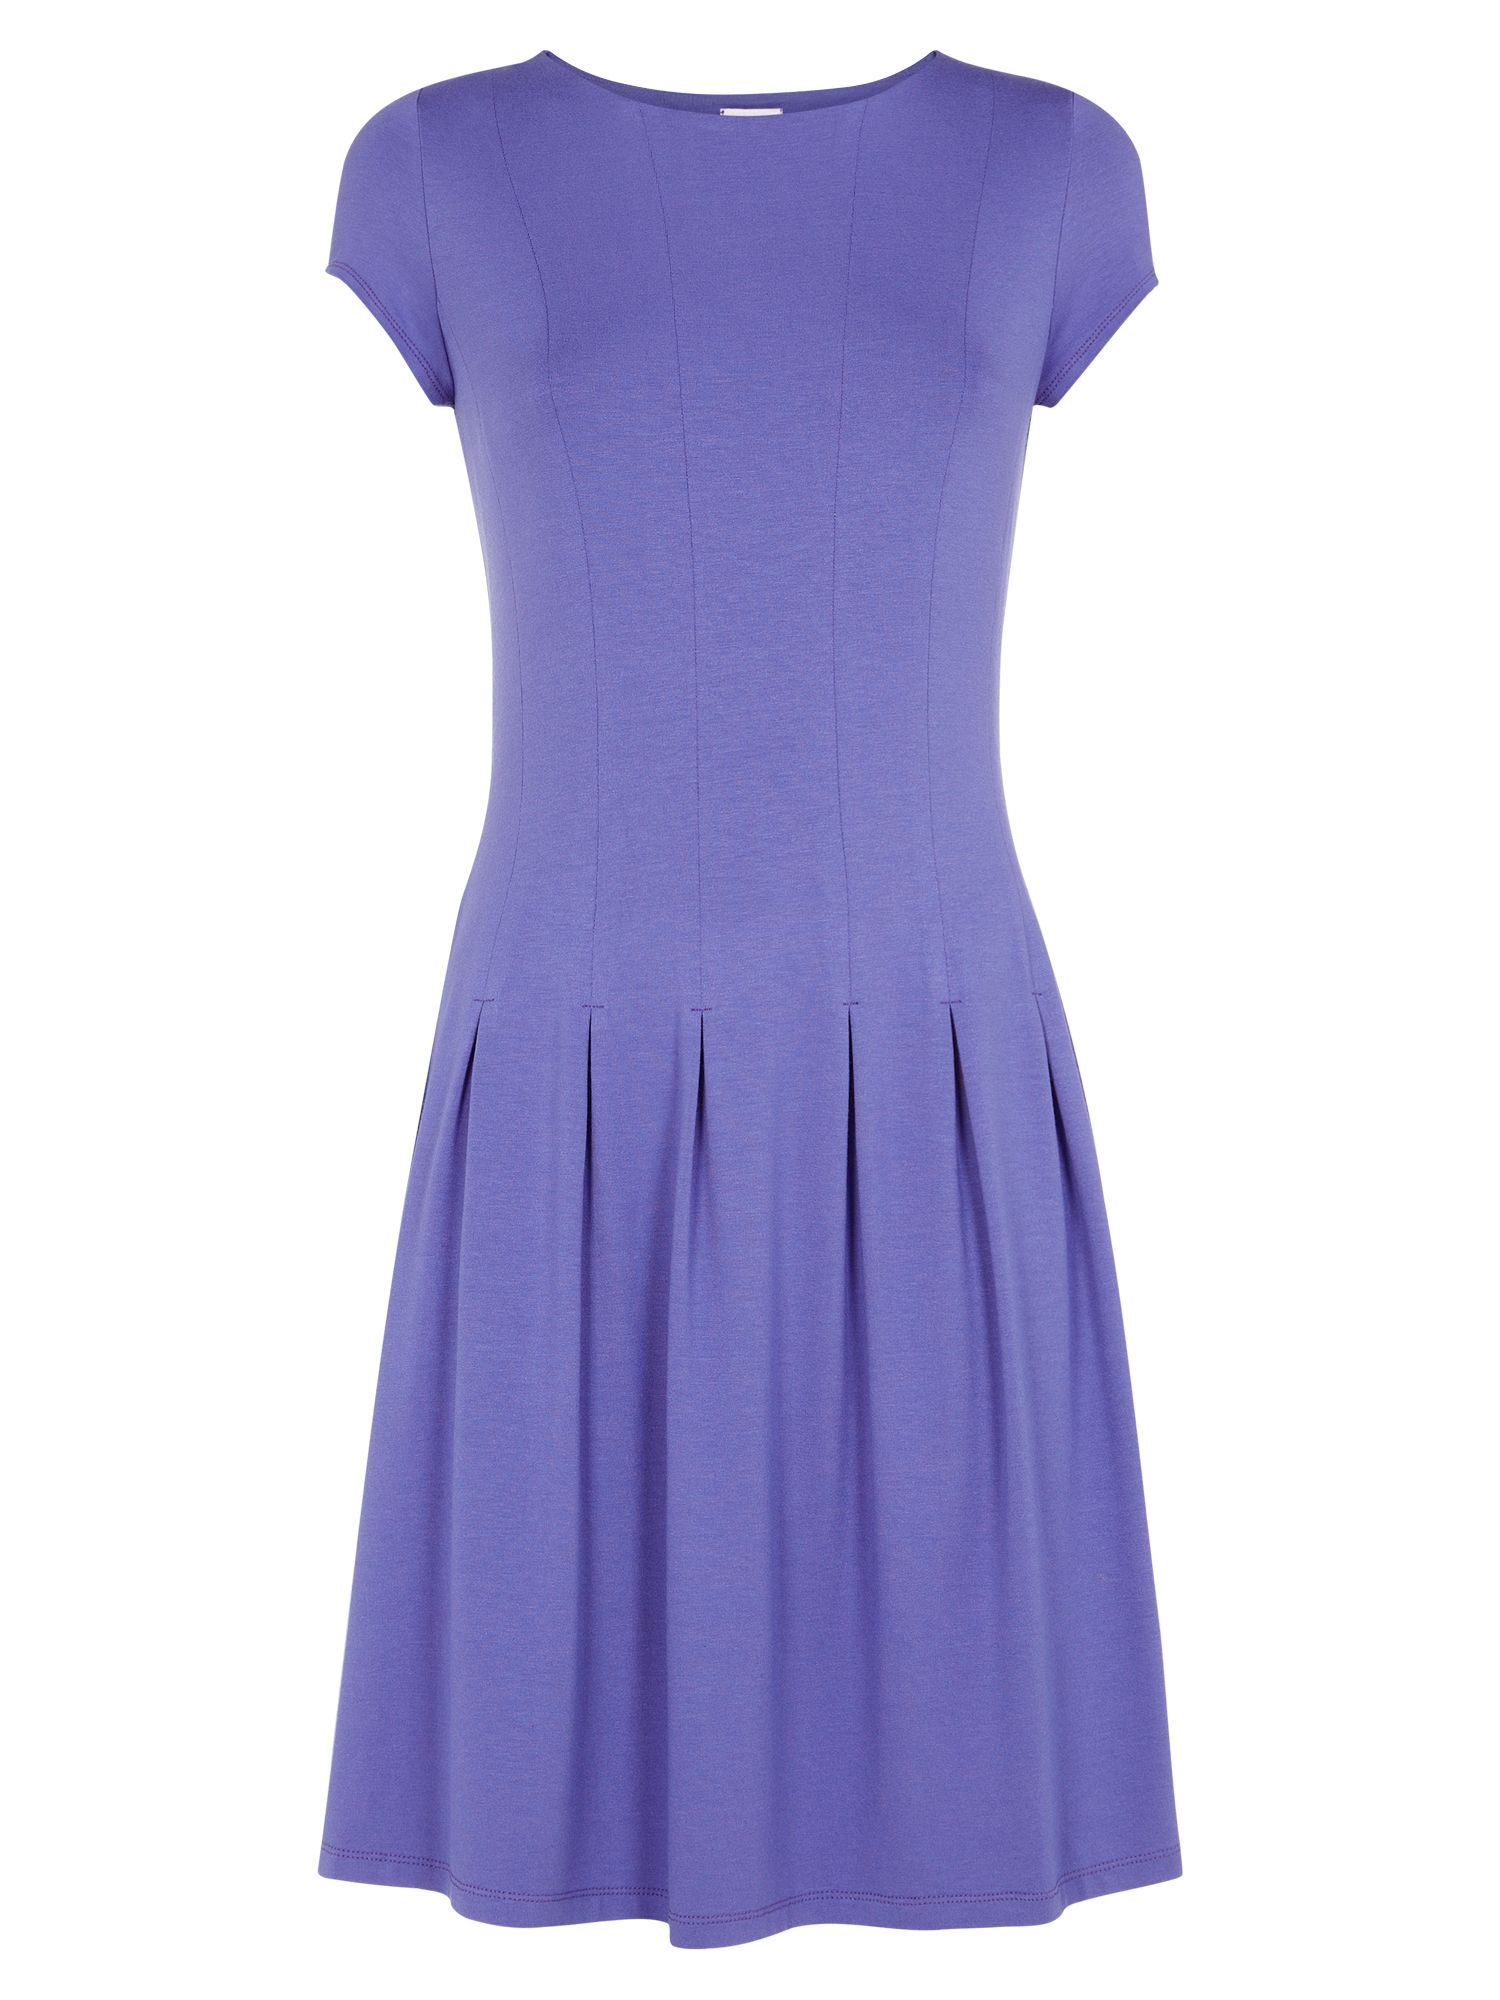 Purple pleat dress